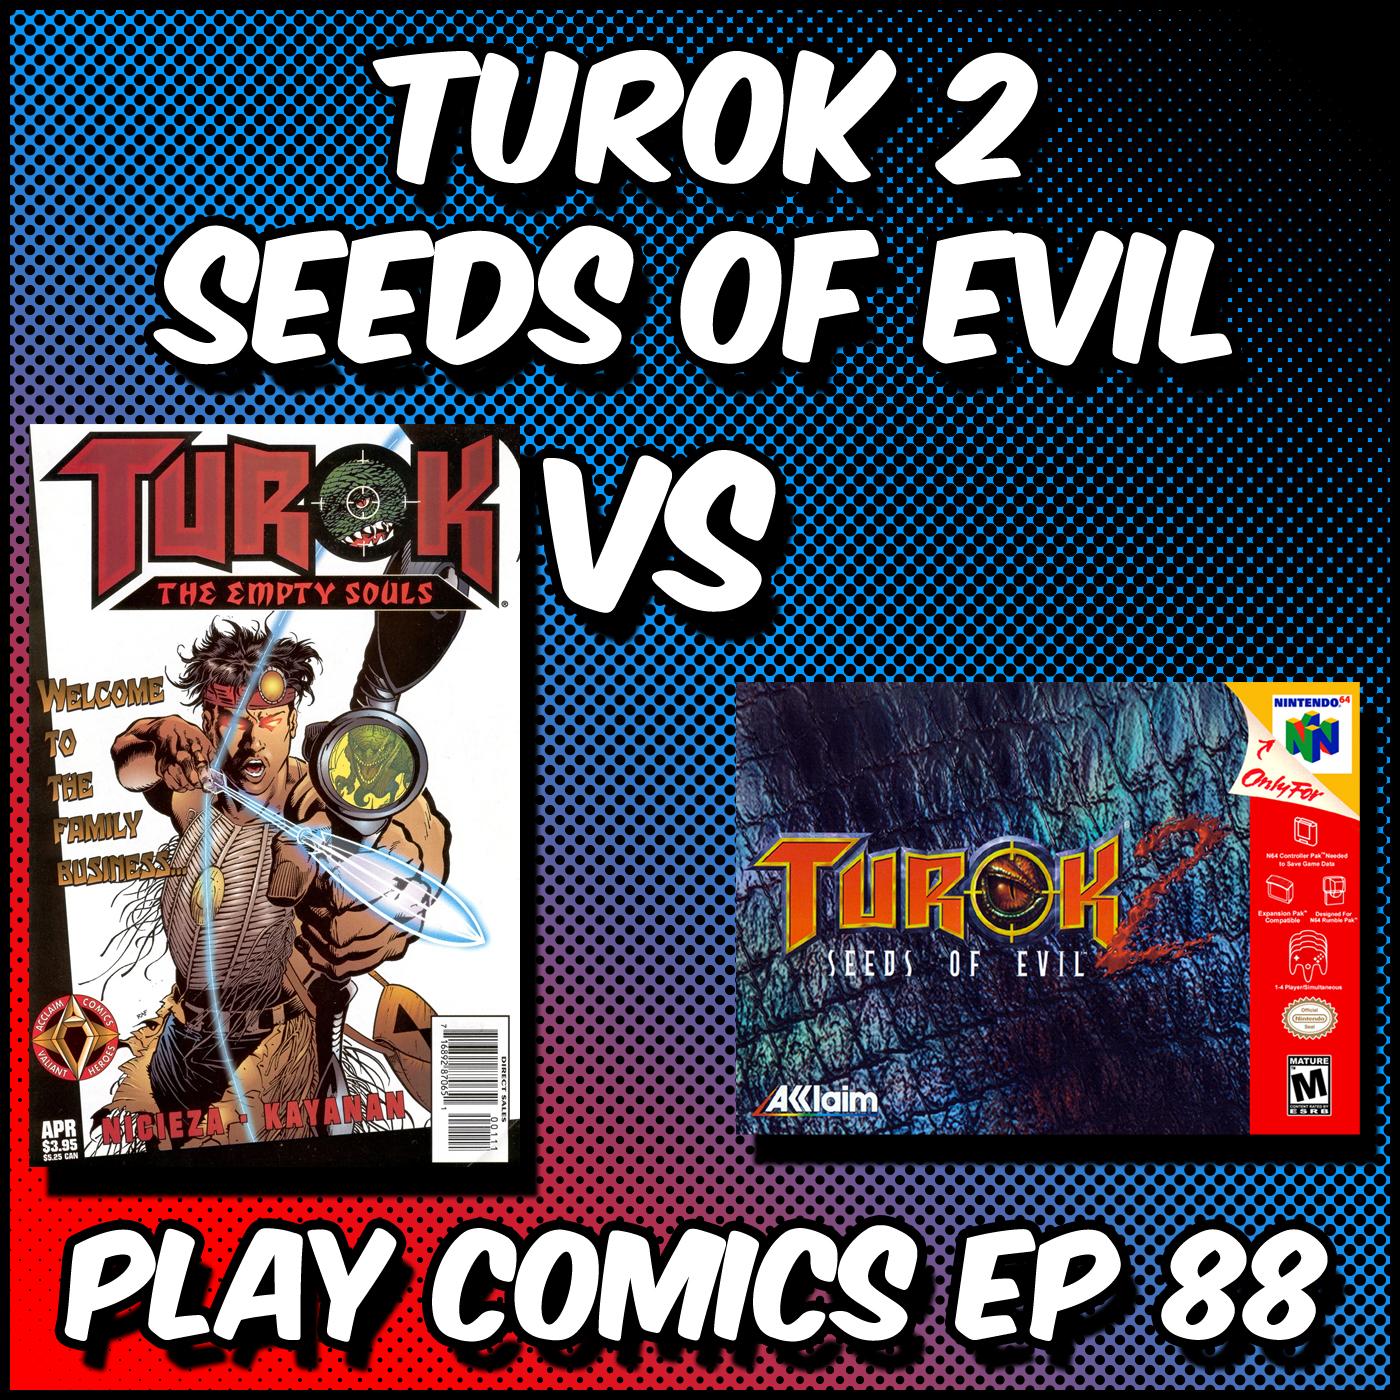 Turok 2 Seeds of Evil with Billy (CommanderCast)